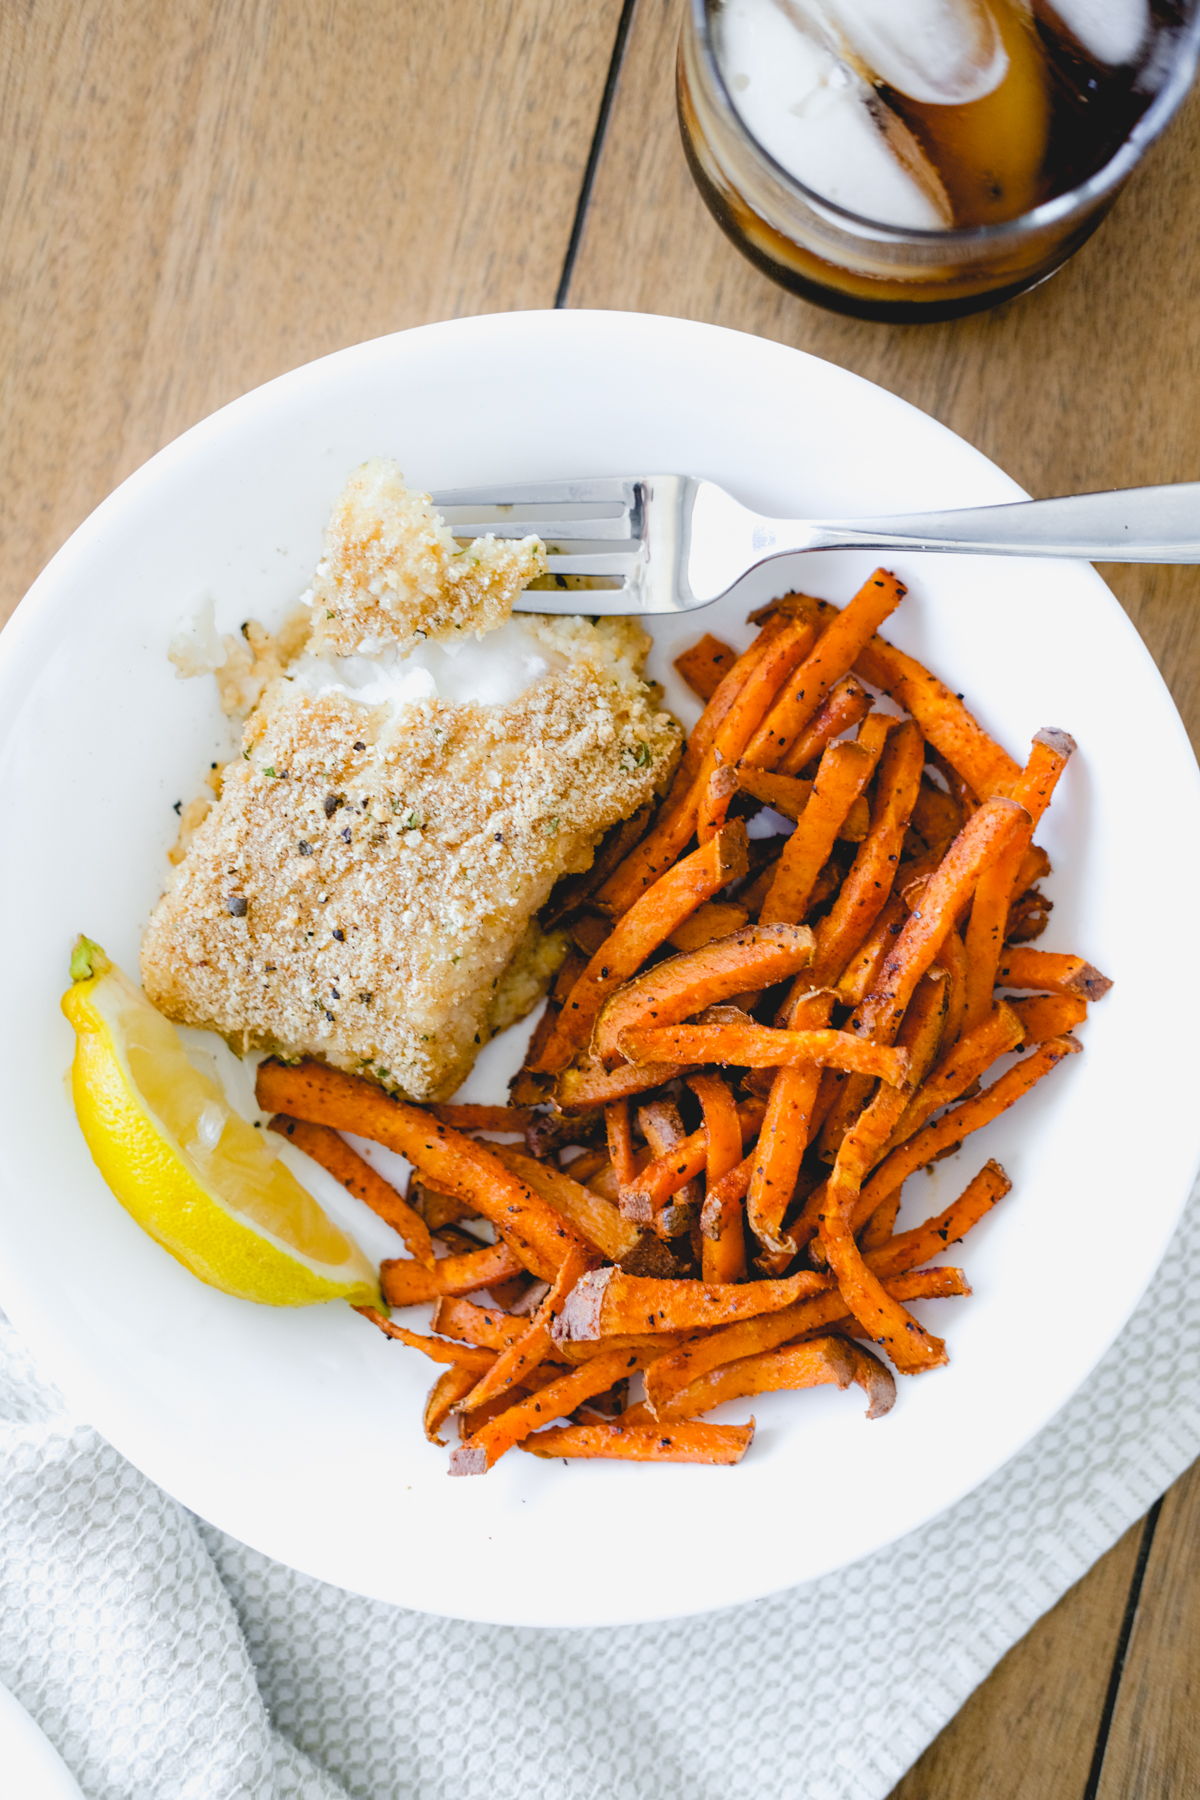 healthier baked fish and chips with lemon